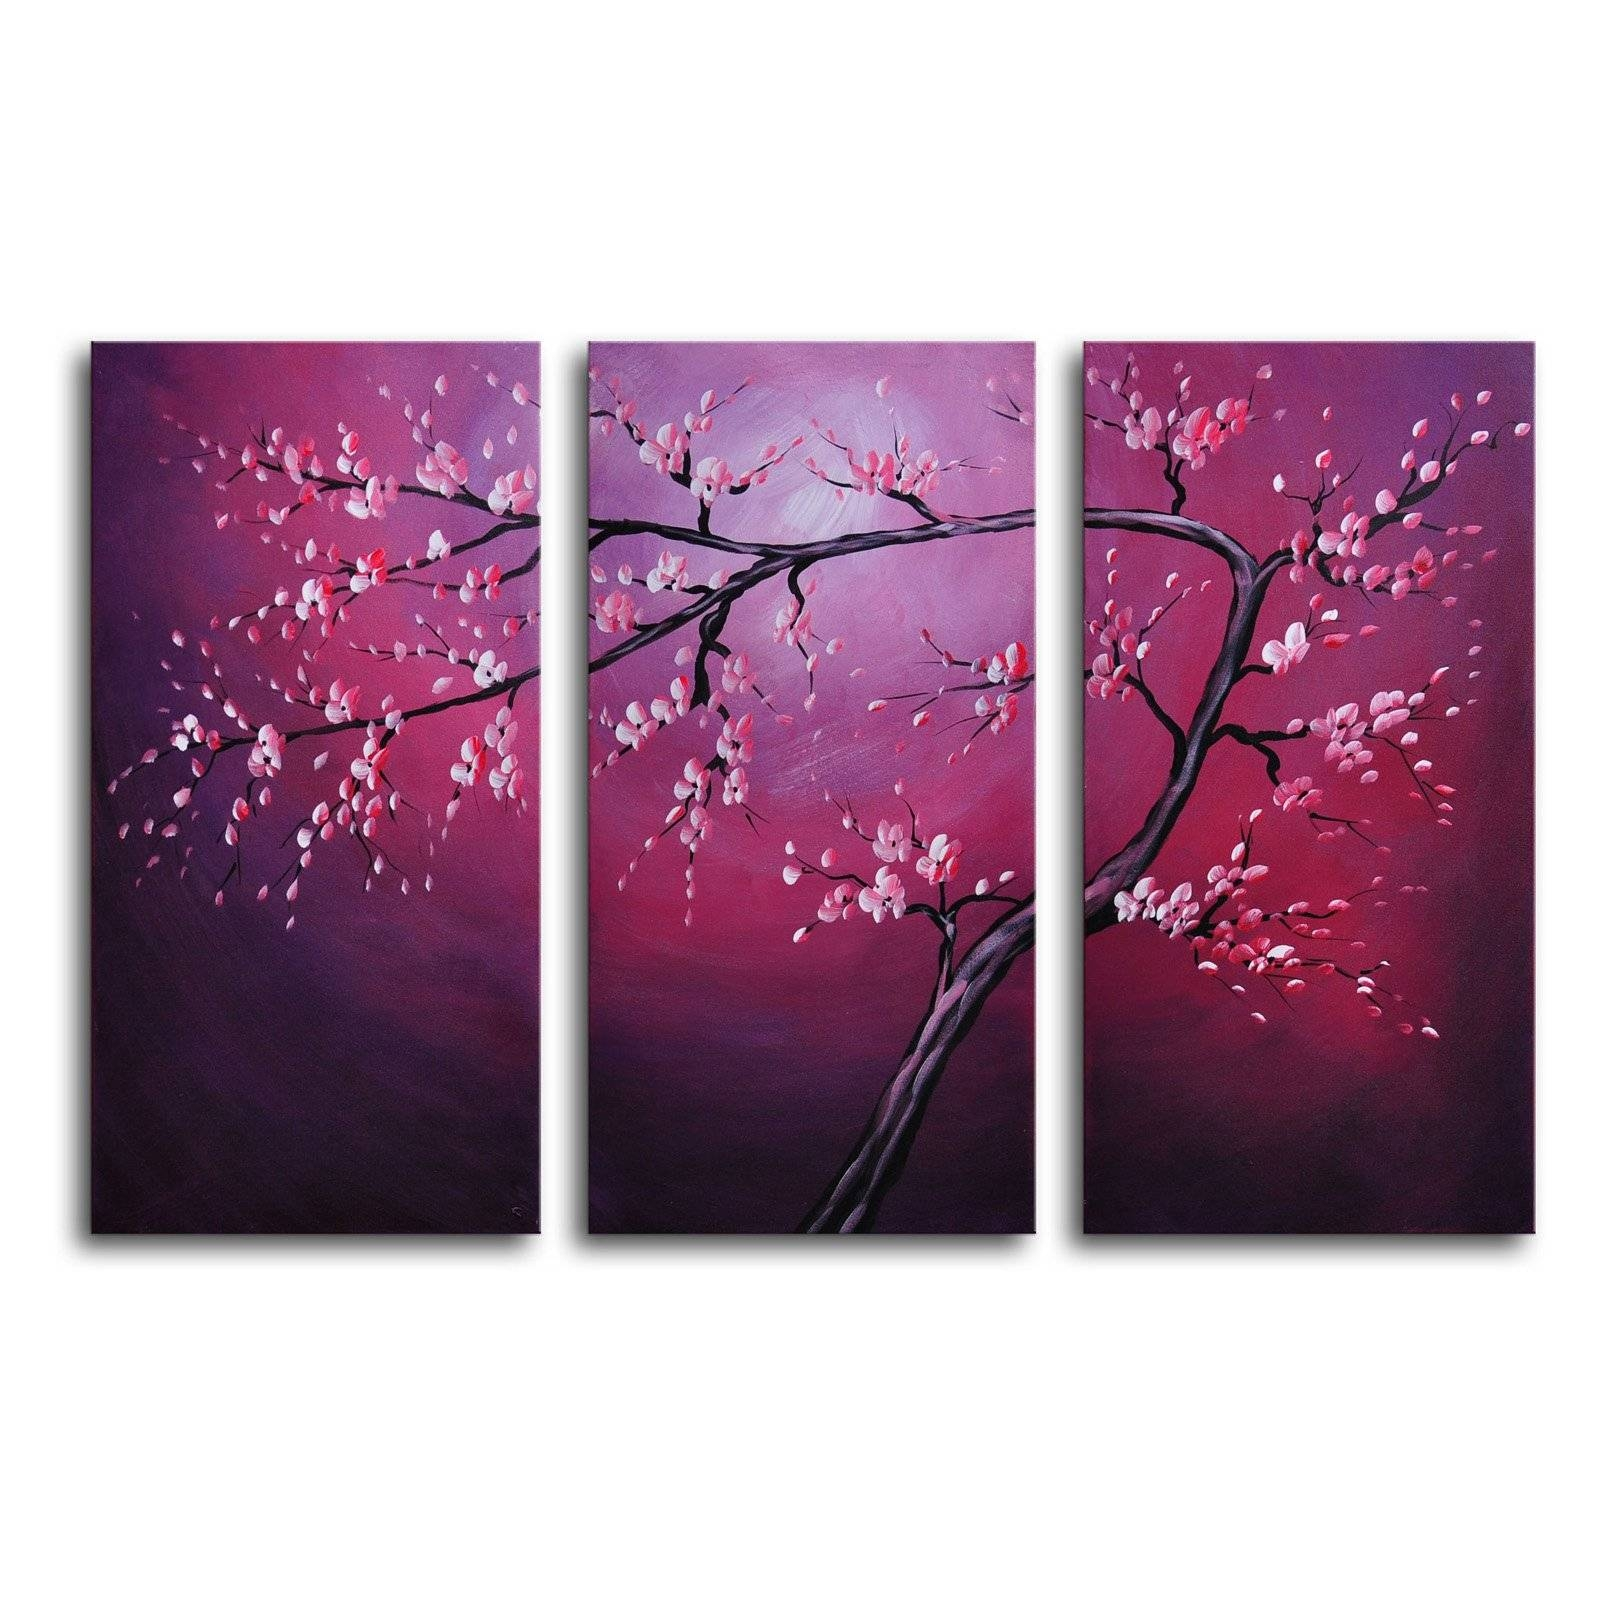 Pink On Crimson 3 Piece Canvas Wall Art – 36w X 24h In (View 20 of 20)